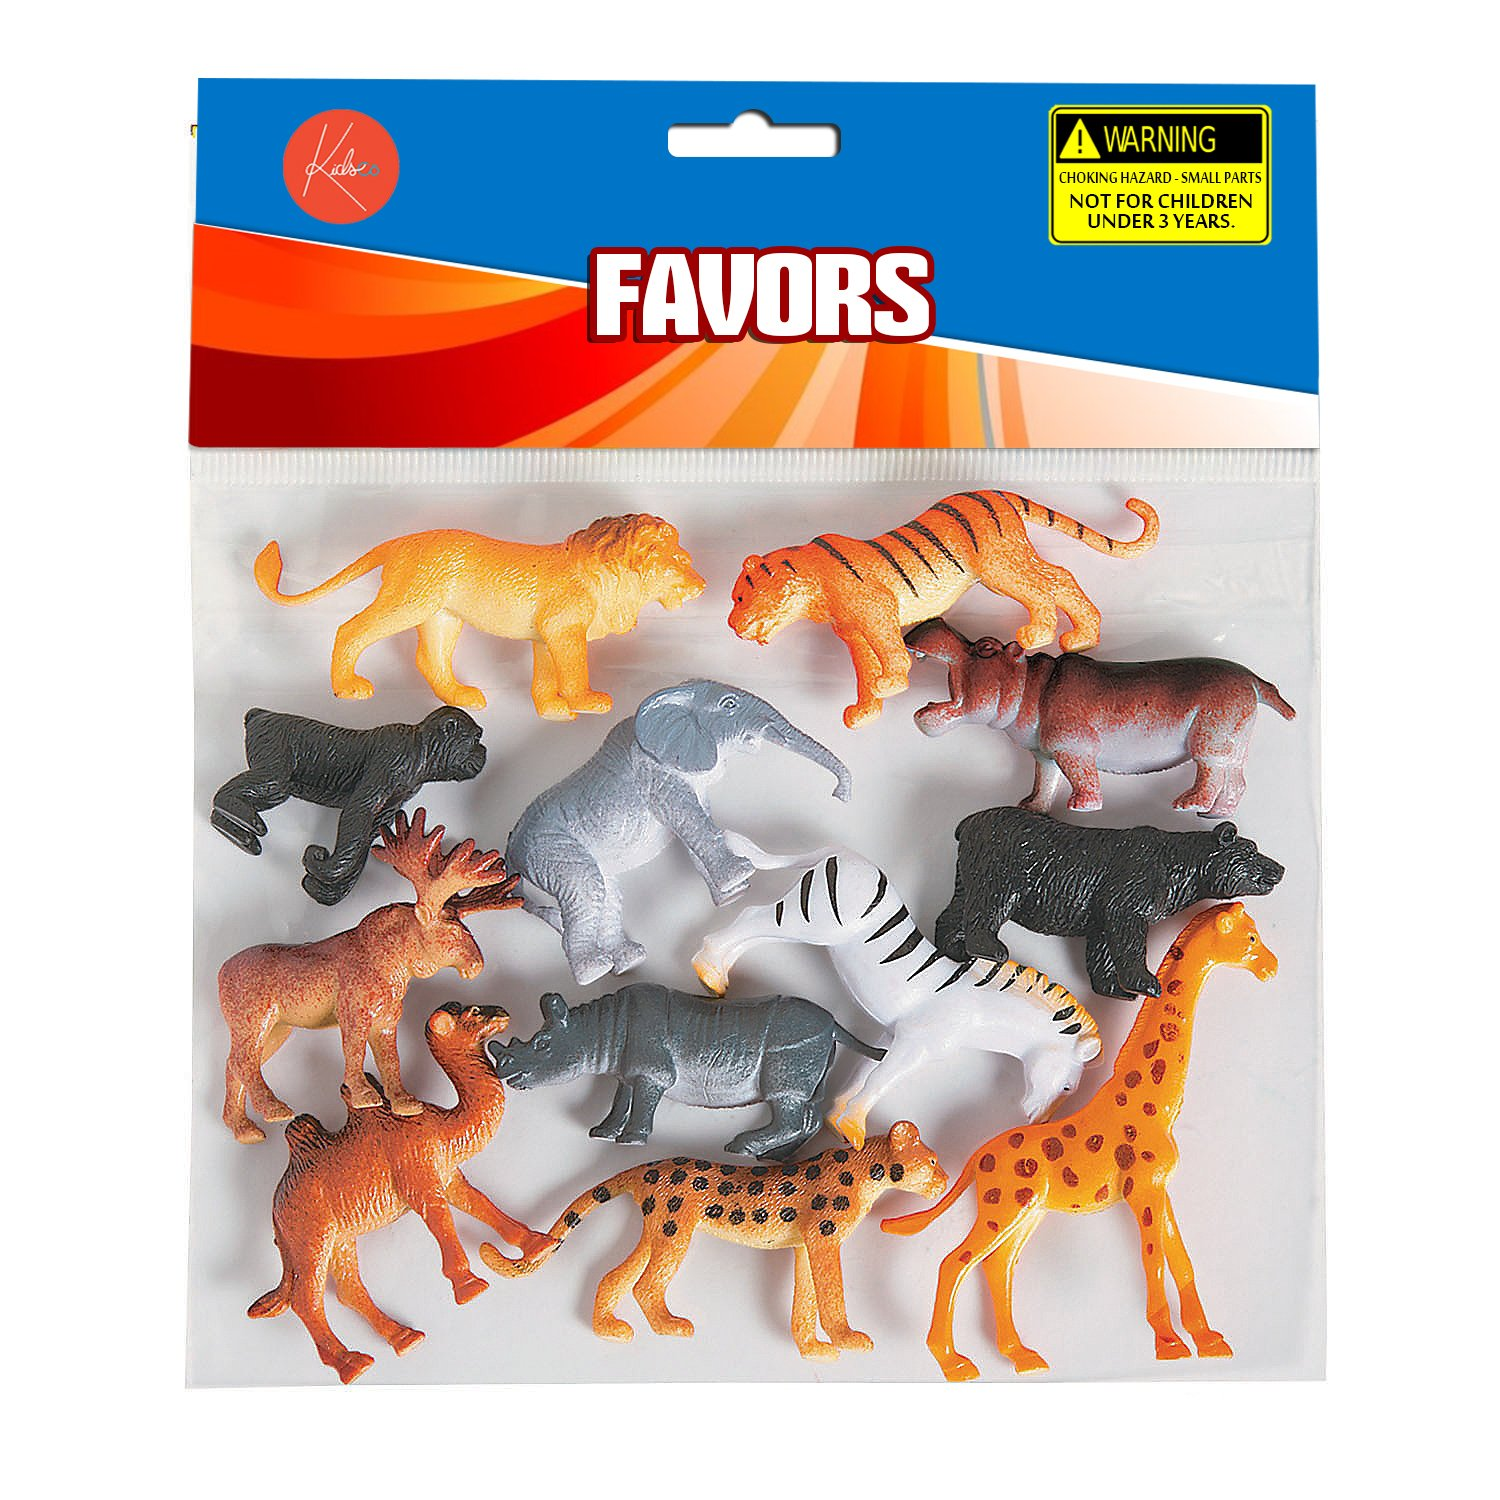 Plastic Safari Animals - Pack Of 12 - 2 Inches - Wild Jungle Animal Figures Science Learning Resource - Party Pack - For Kids Great Party Favors, Bag Stuffers, Fun, Toy, Gift, Prize - By Kidsco by Kidsco (Image #2)